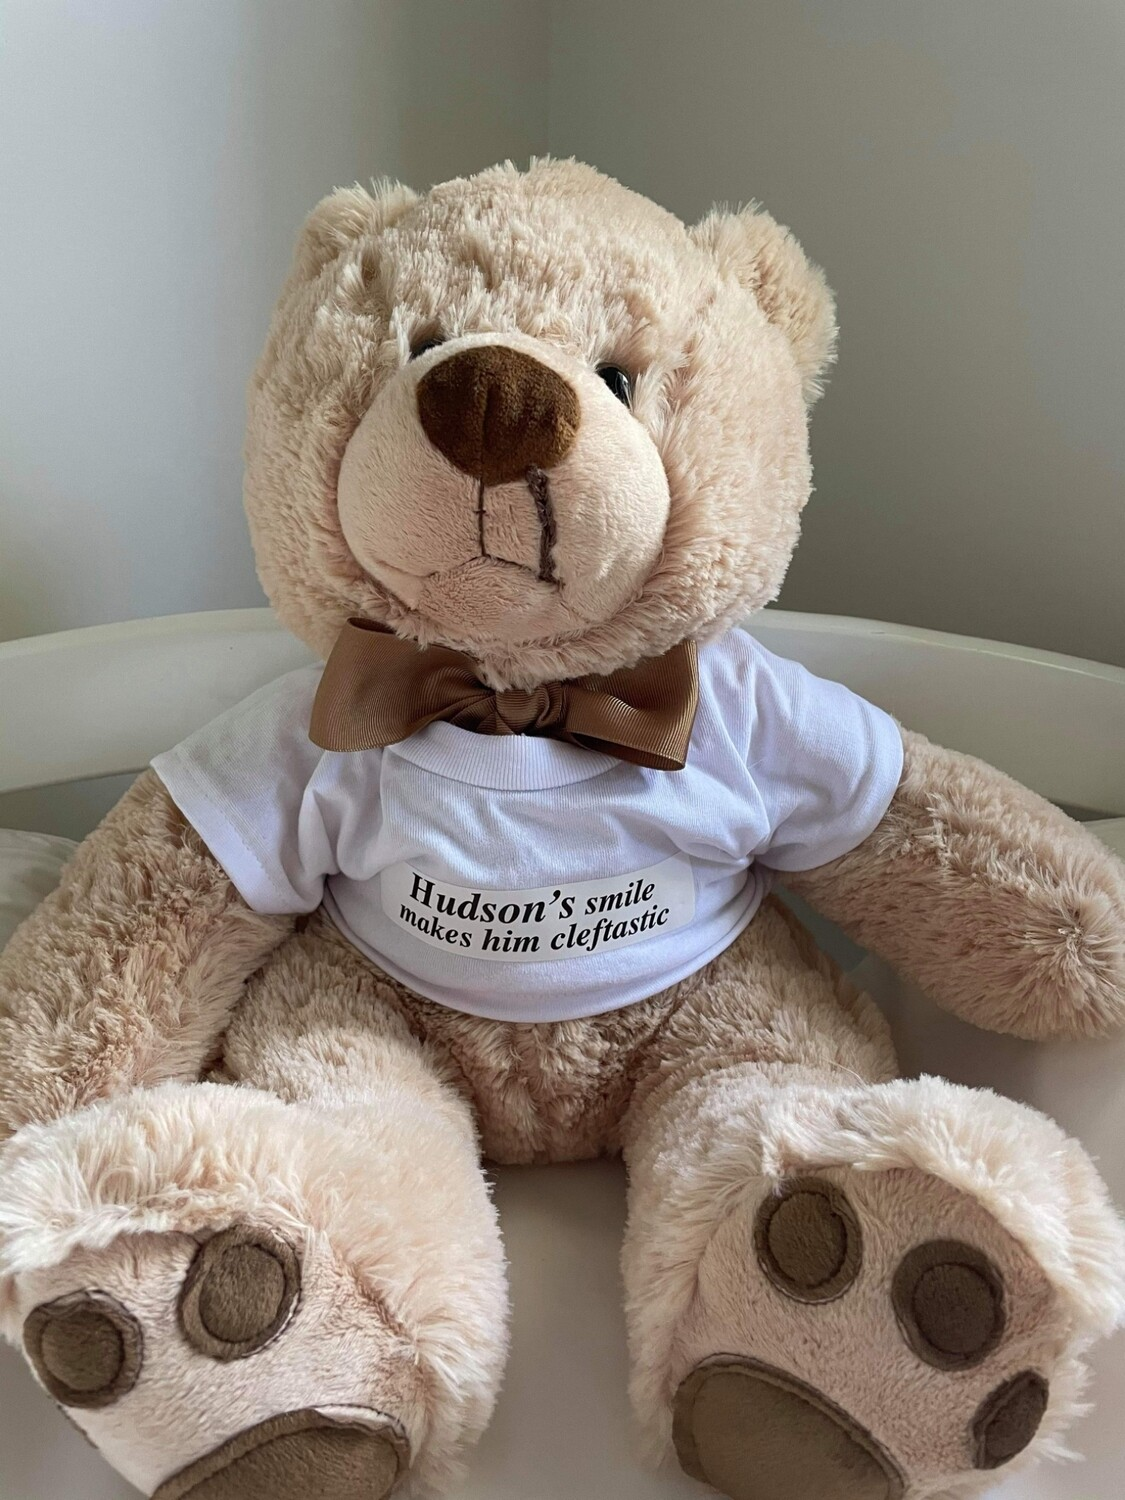 Cleft support teddy bear